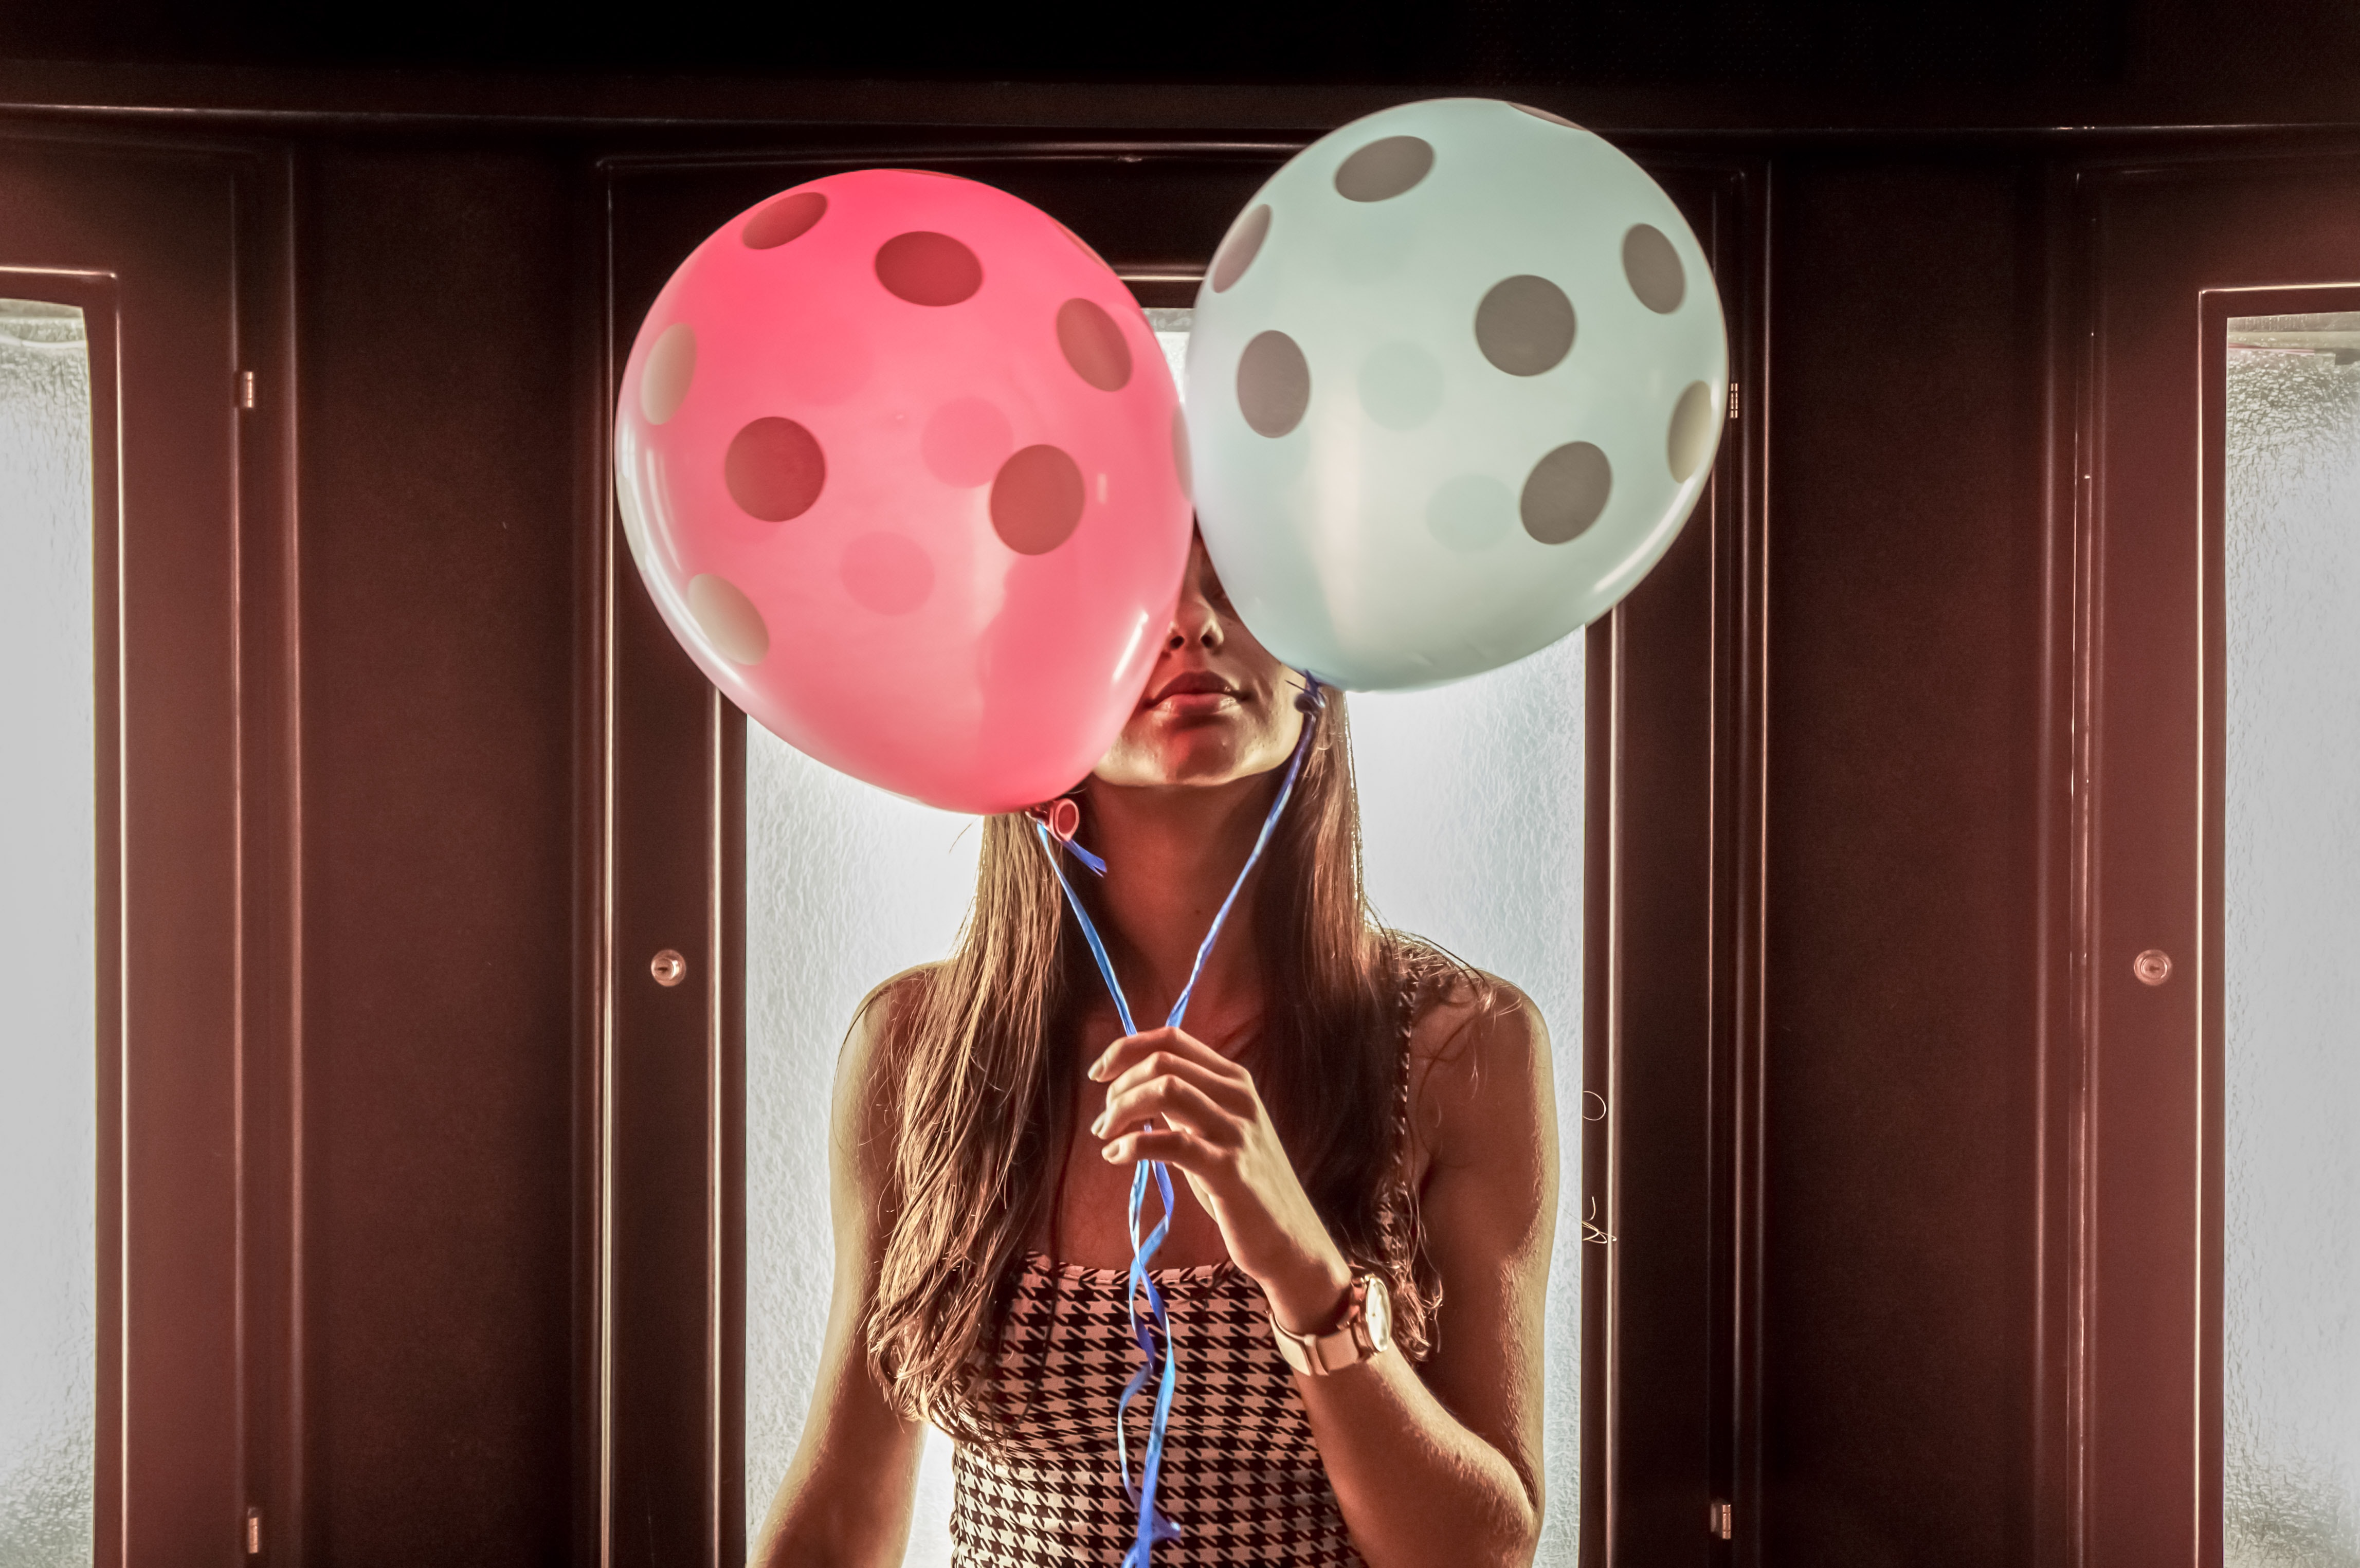 woman wearing white-and-black houndstooth tank dress holding pink and teal inflated balloons